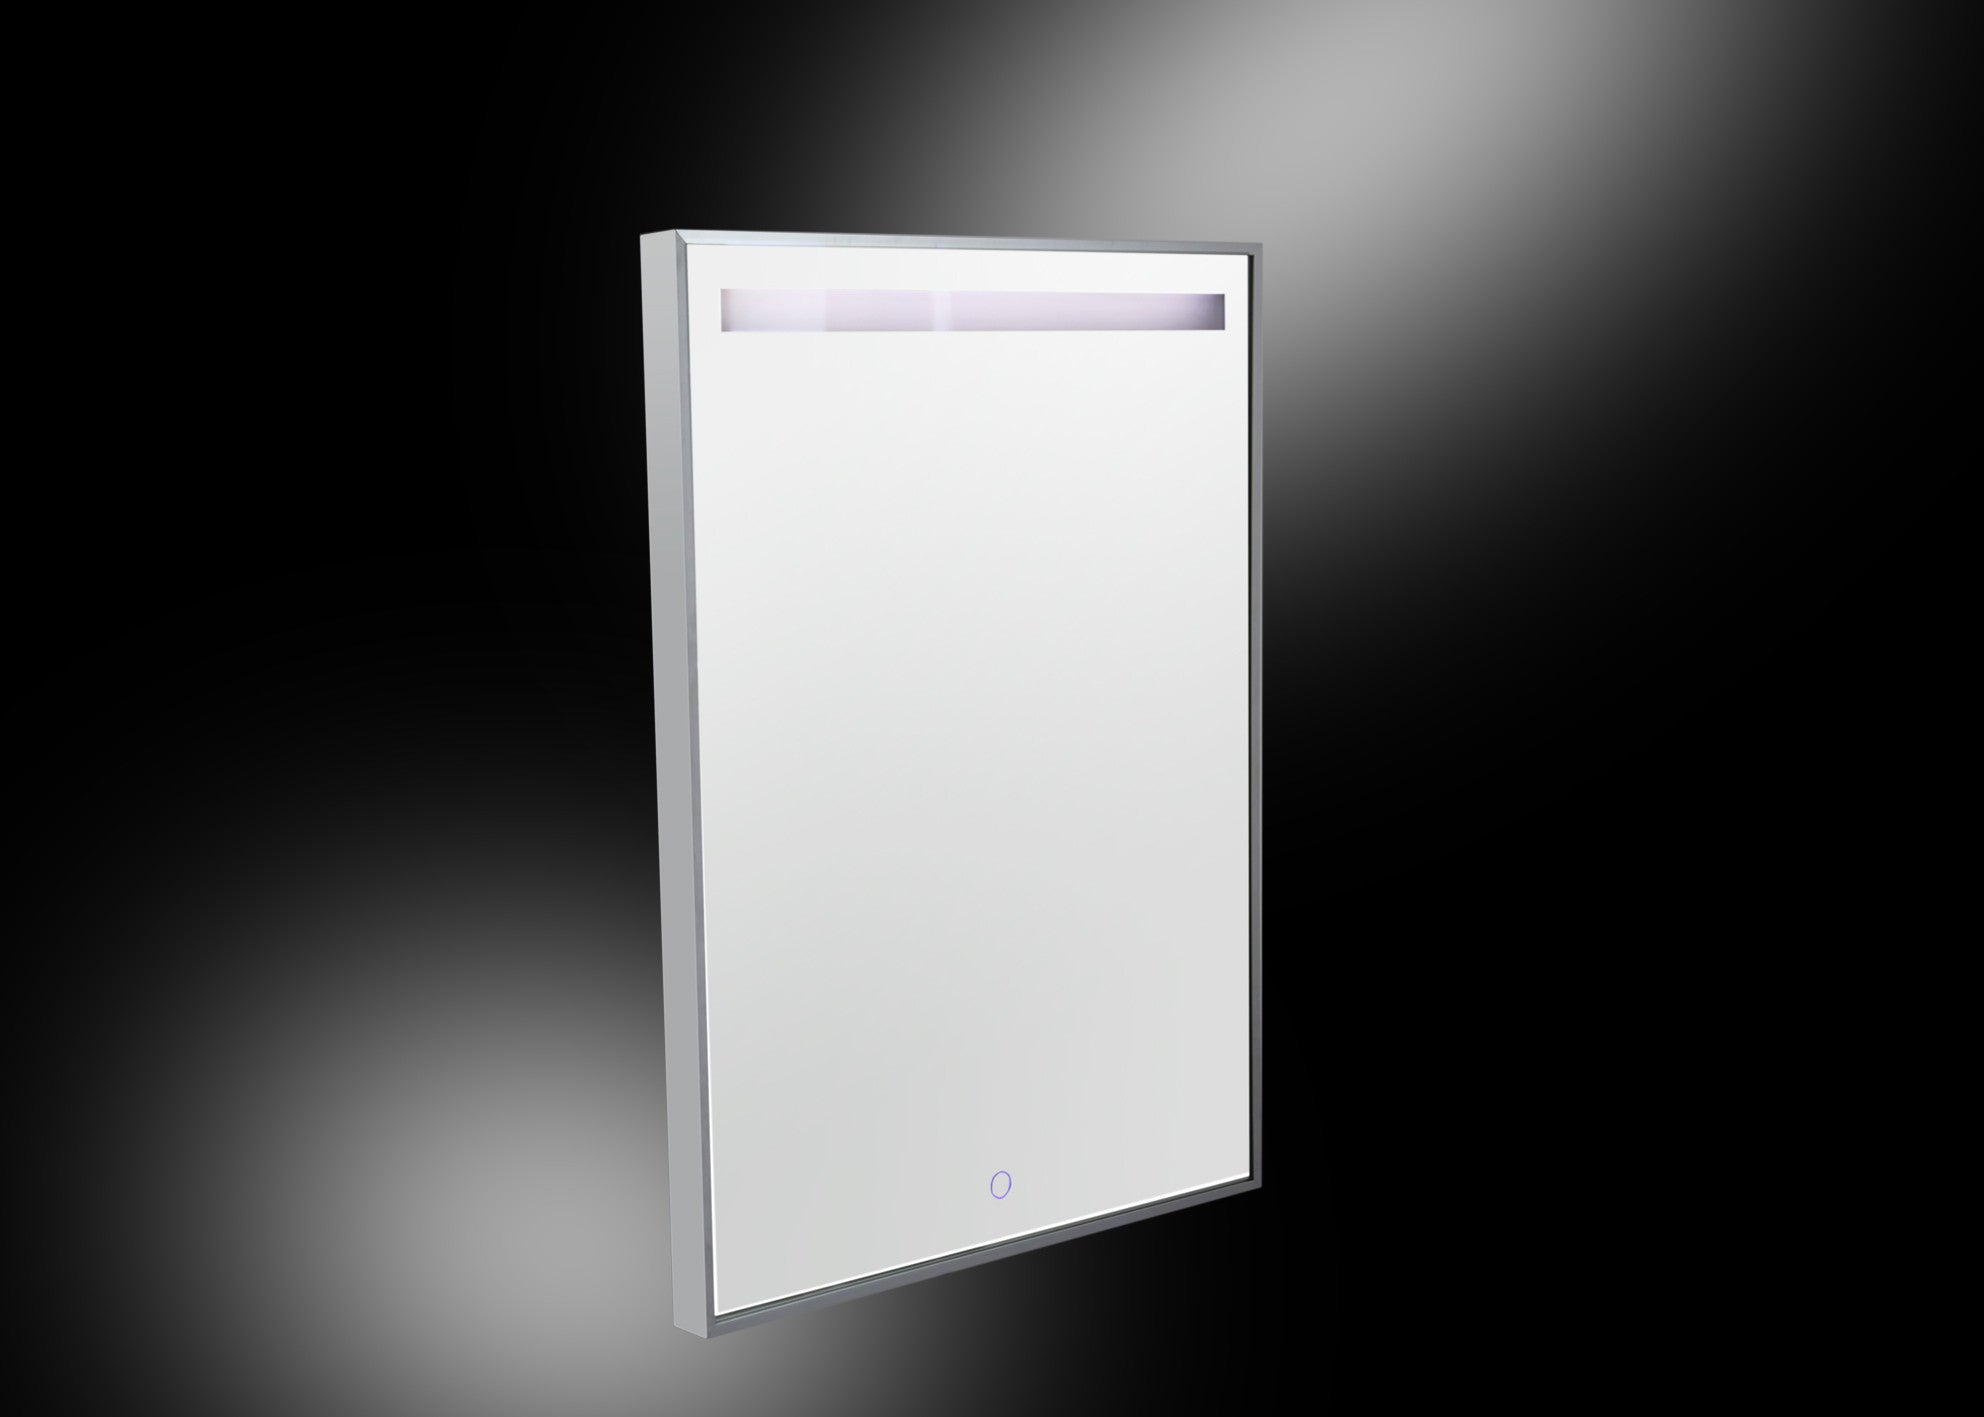 Miracle LED Mirror 60 x 80 cm Front